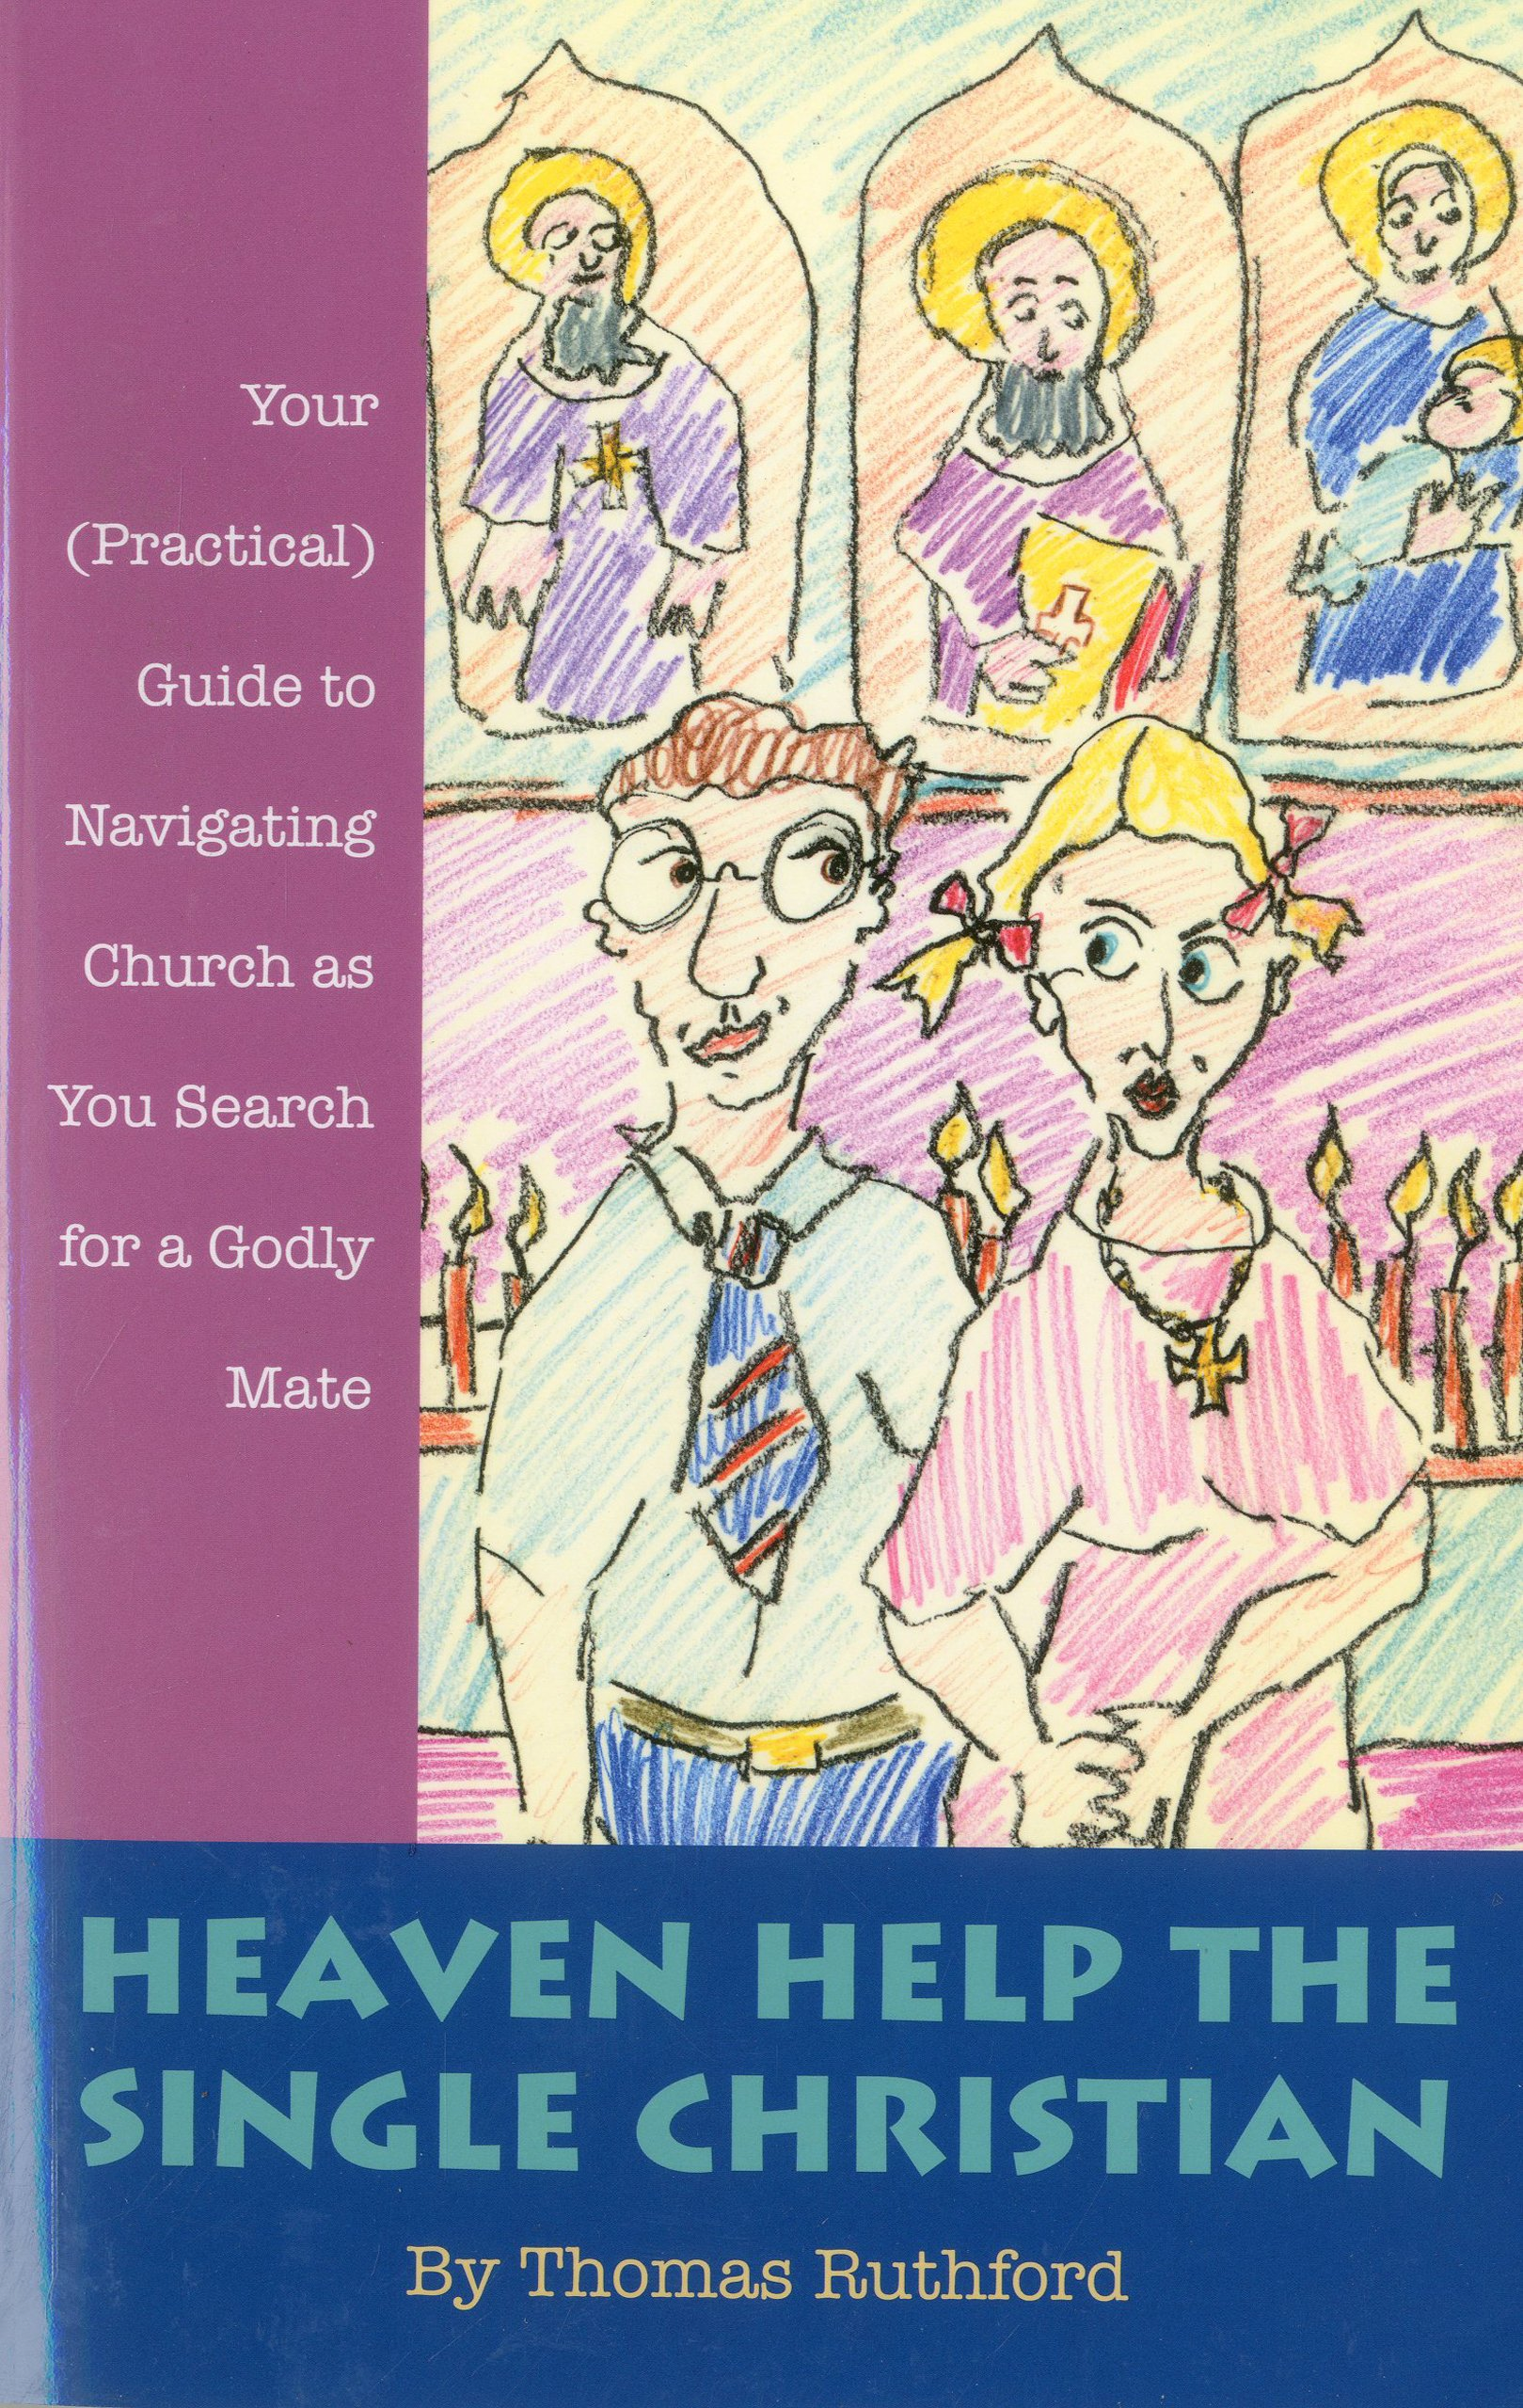 Heaven Help the Single Christian: Your (Practical) Guide to Navigating Church as You Search for a Godly Mate pdf